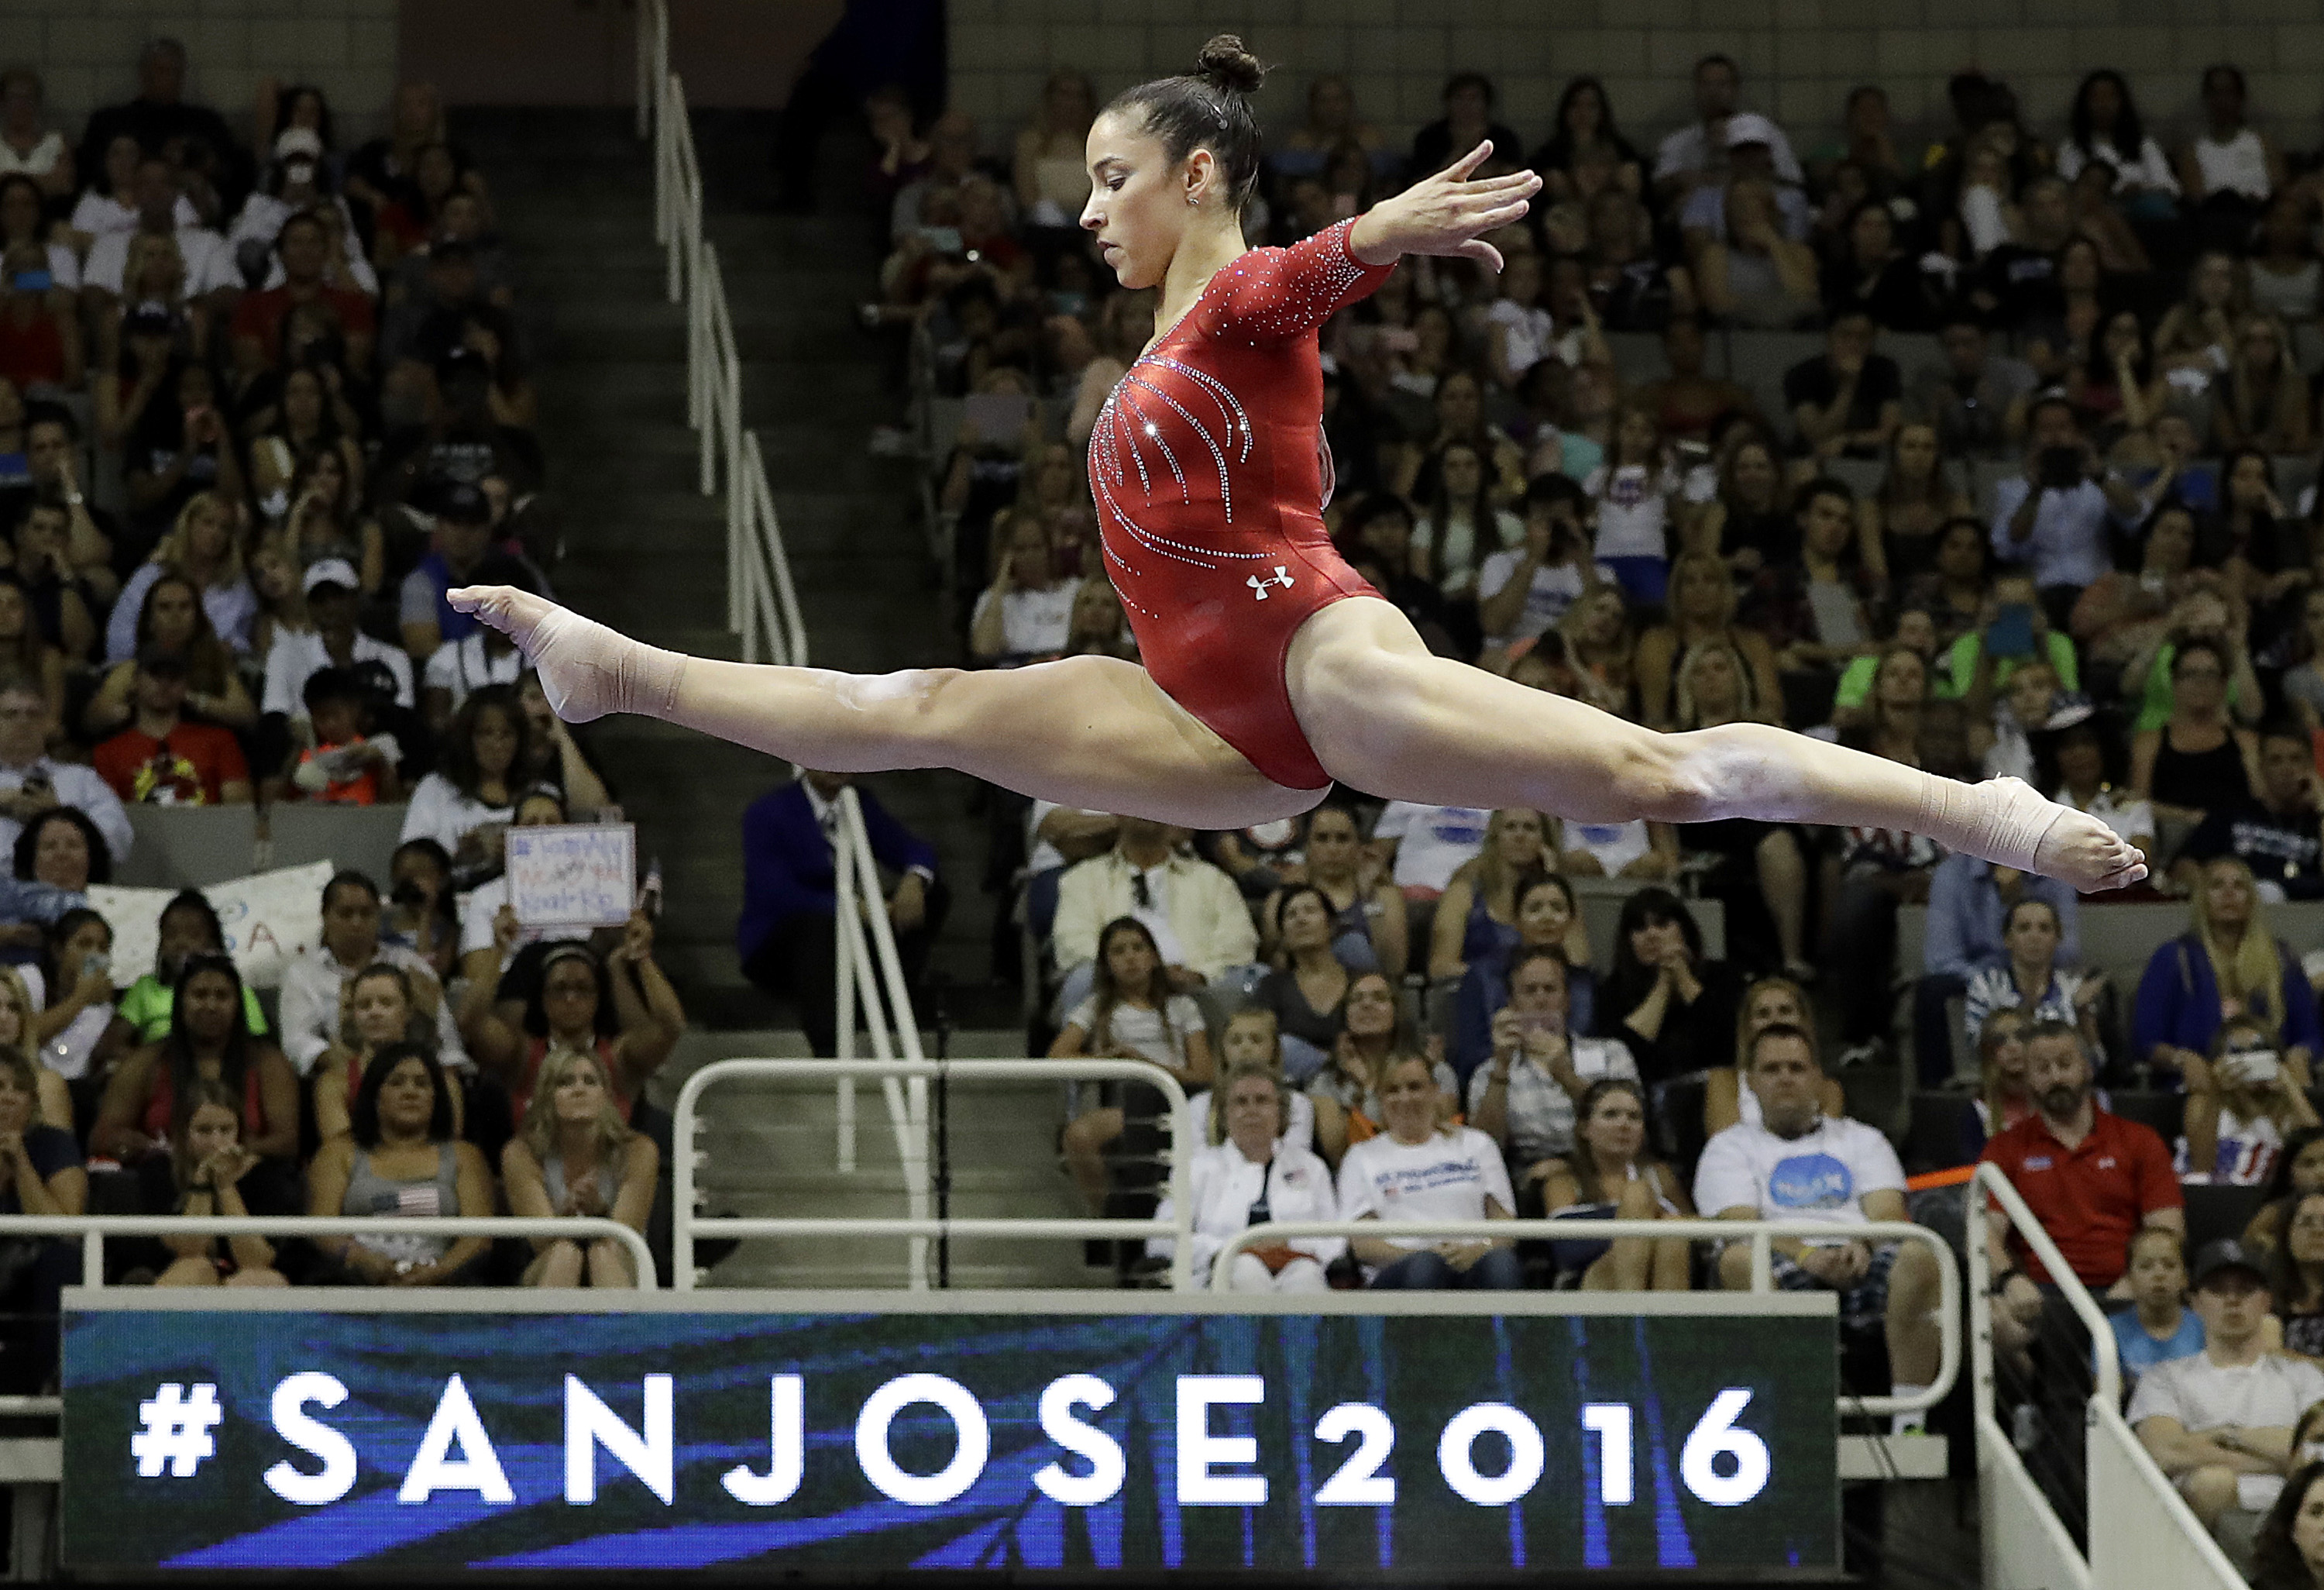 Aly Raisman competes on the balance beam during the women's U.S. Olympic gymnastics trials in San Jose, Calif., Sunday, July 10, 2016. (AP Photo/Gregory Bull)